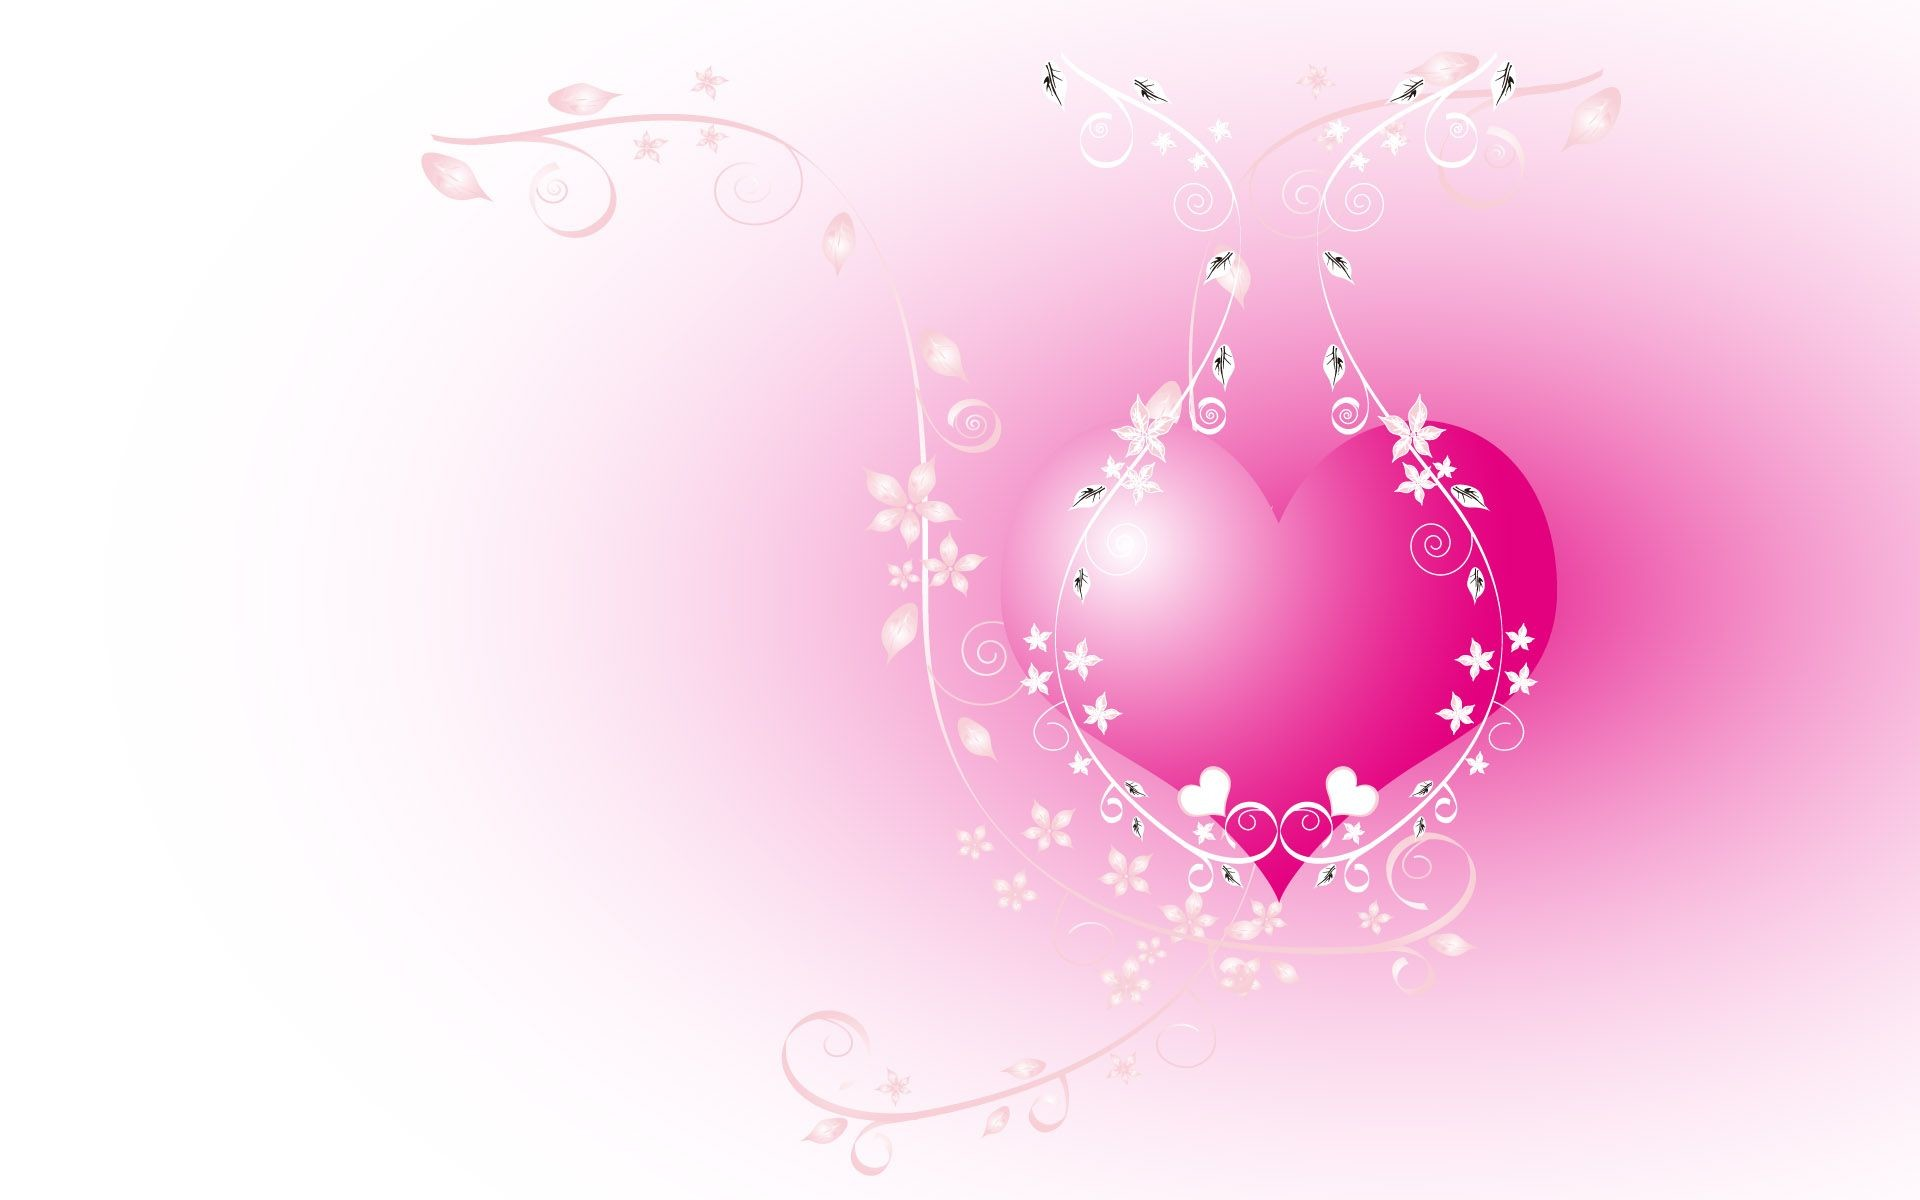 Res: 1920x1200, Download Hearts wallpaper, the pink heart image